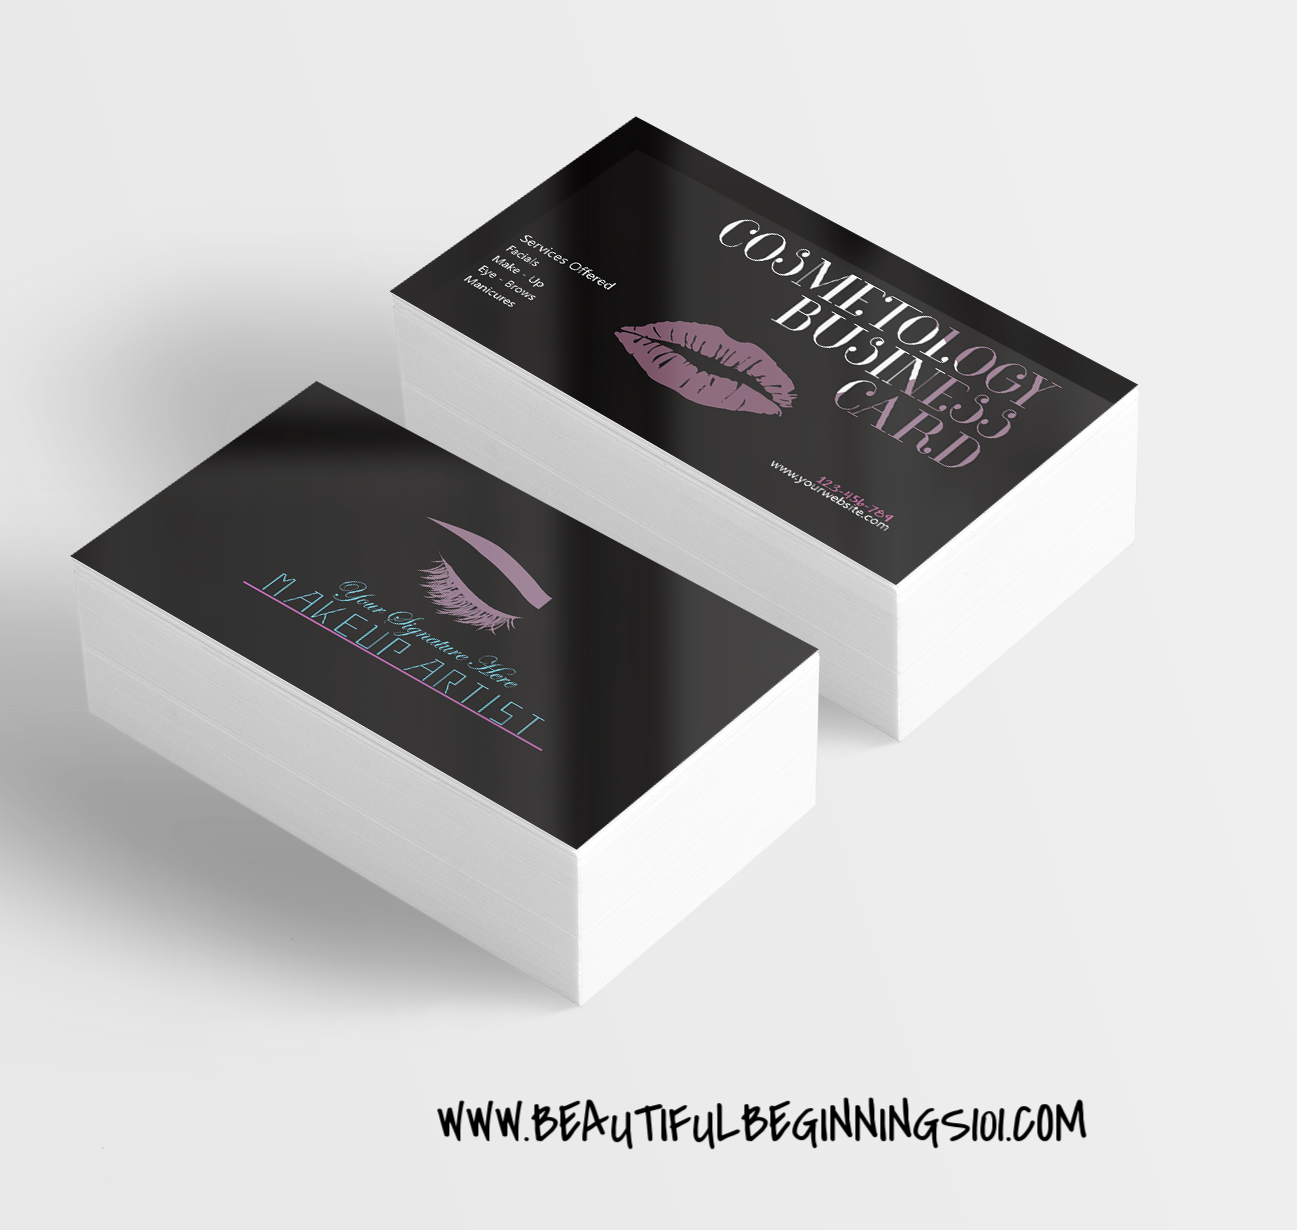 COSMOTOLOGY BUSINESS CARD MOCK UP PURPLE AND BLACK PURPLE LIPS - Copy.png